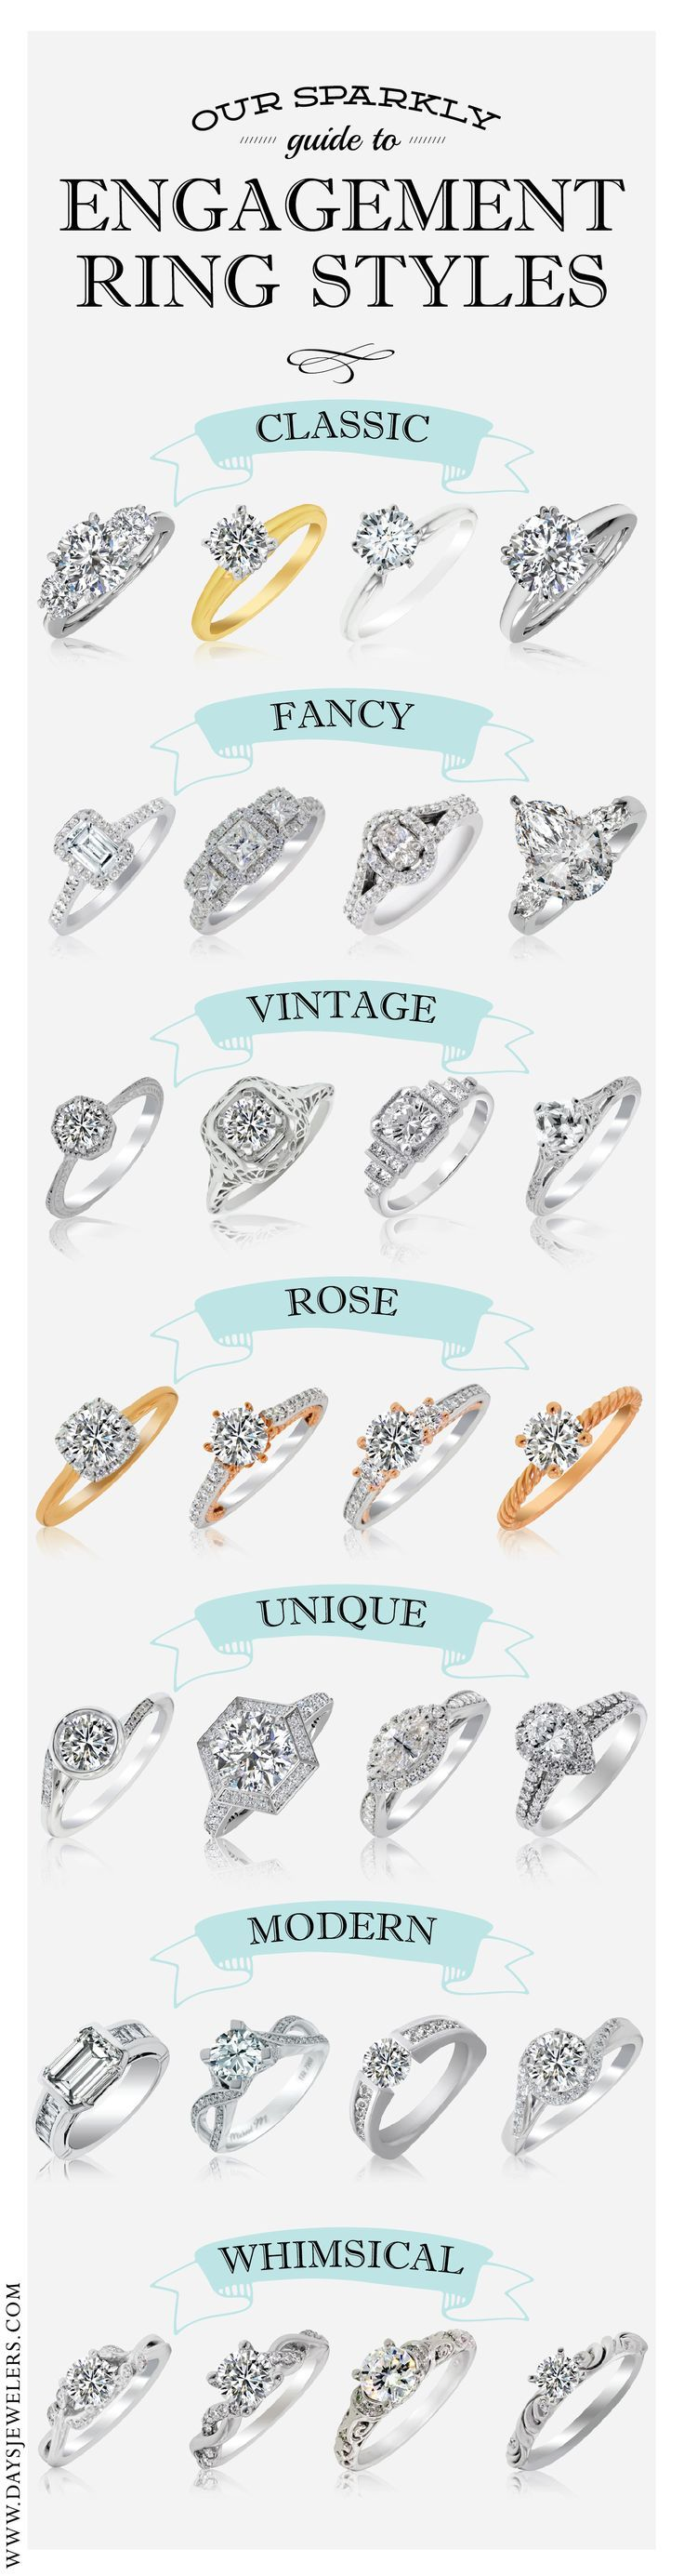 different ring styles engagement of rings awesome types luxury style